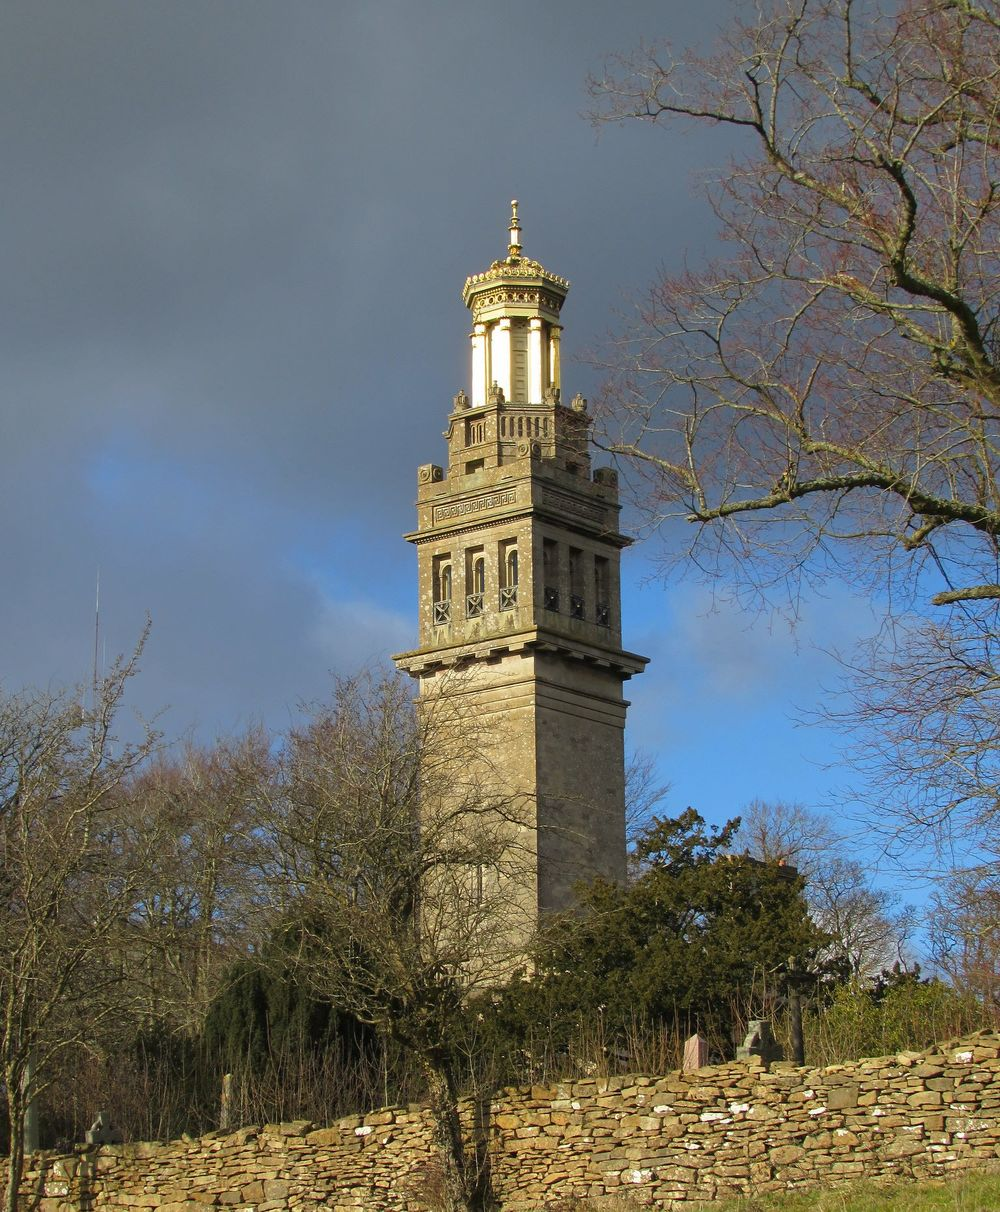 Beckford's Tower in Bath.